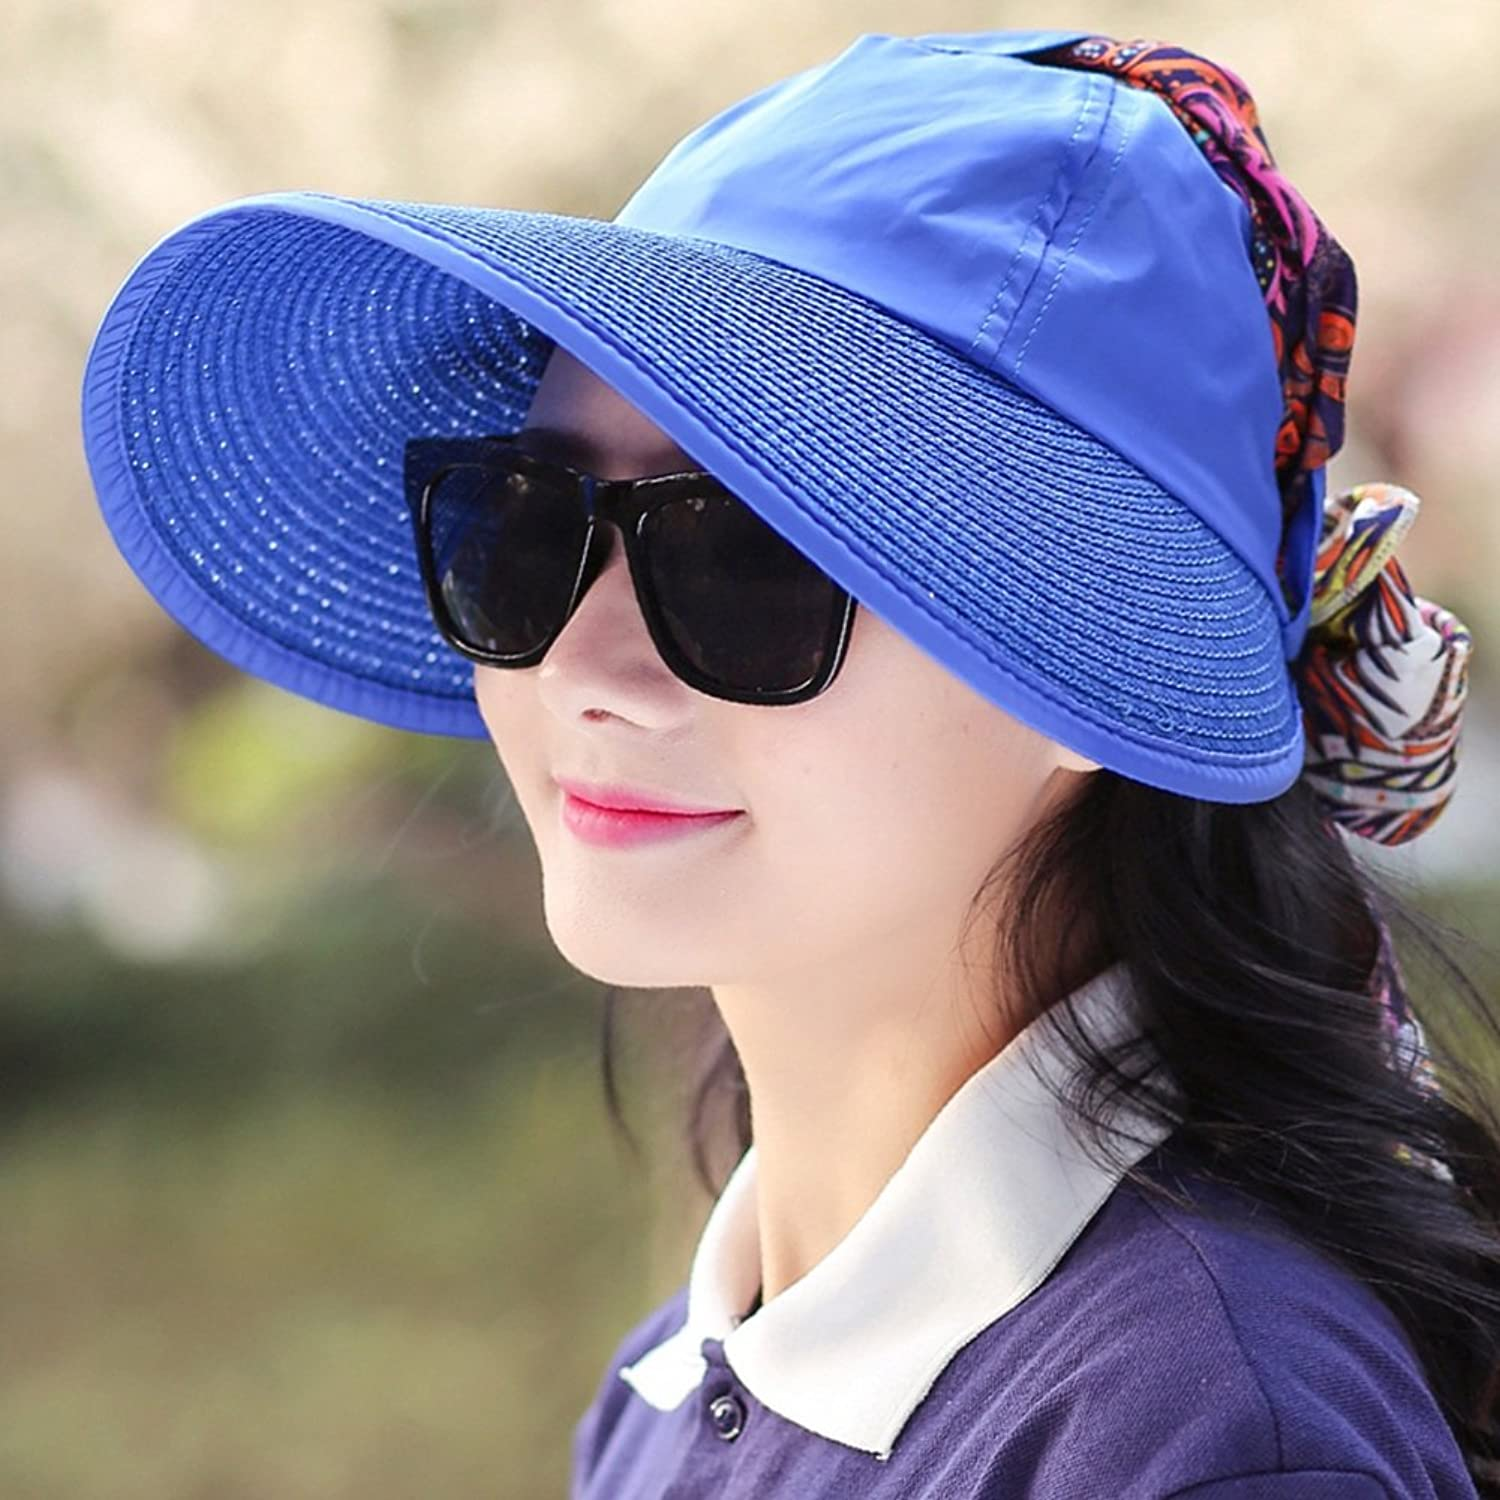 YD Hat Summer Hat, Sun Hat Women Sunscreen Wind Rope Ultralight Breathability Travel, 7 colors Optional    (color   Royal bluee)